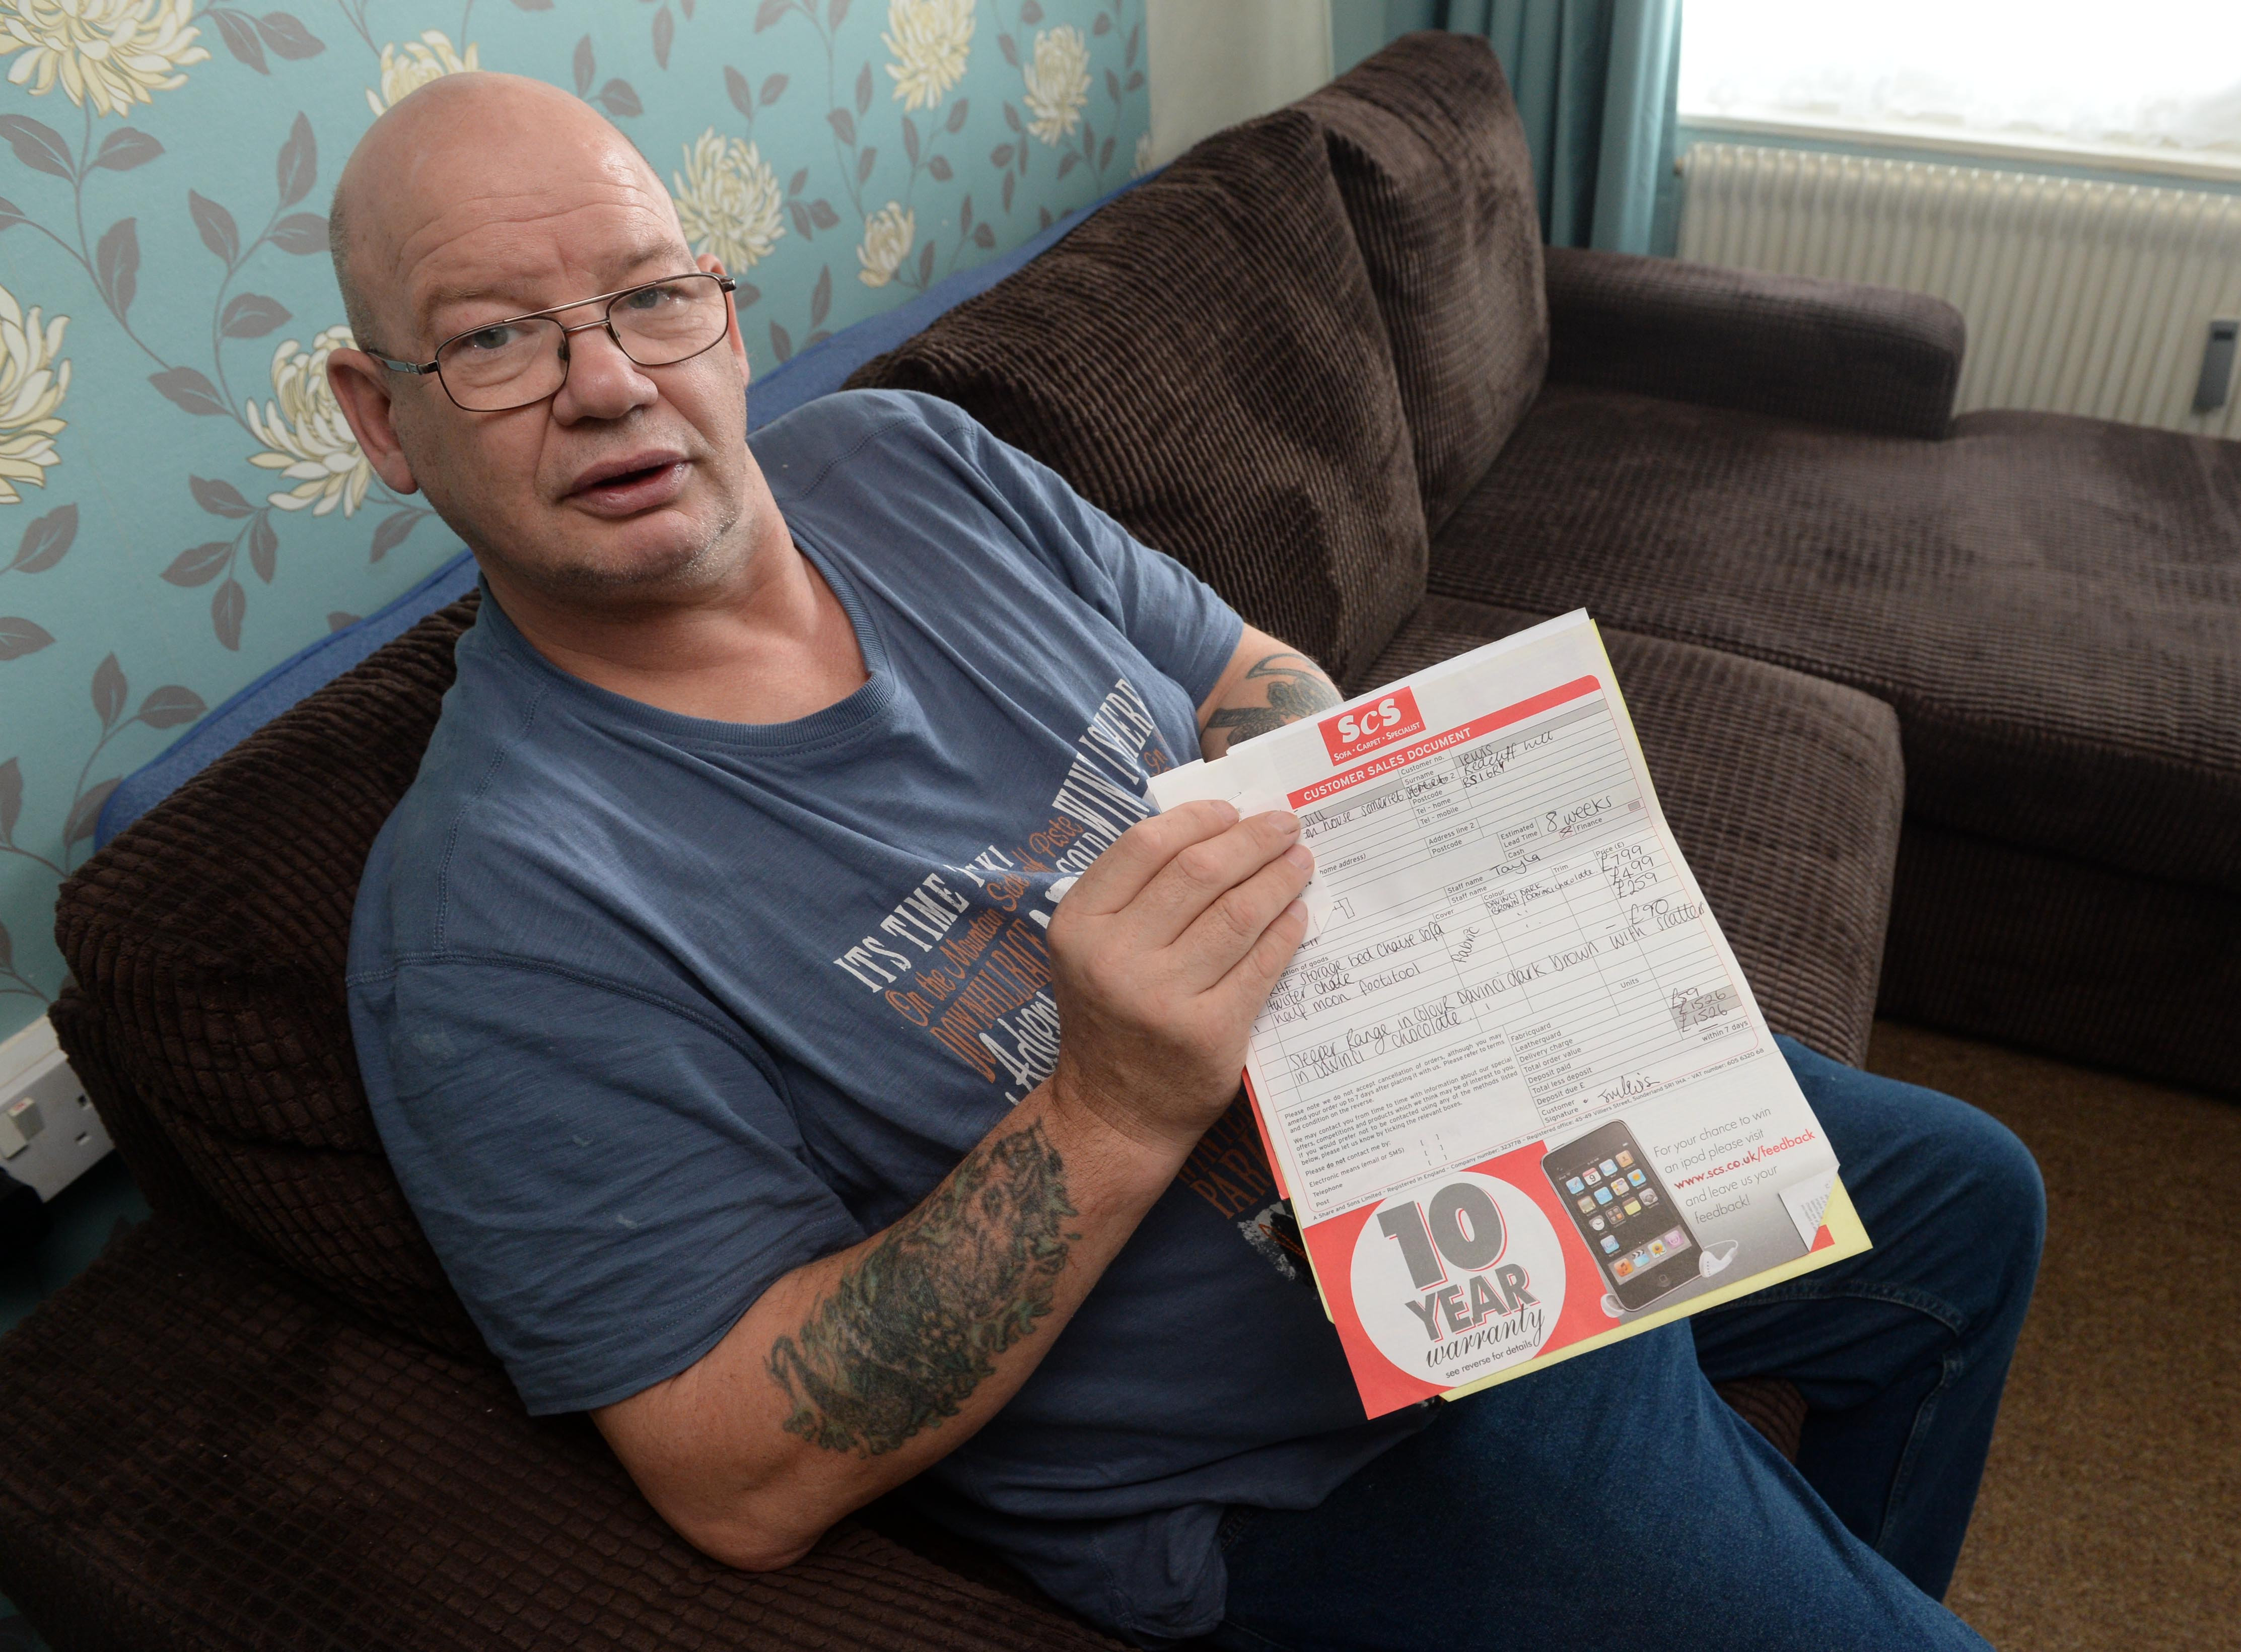 20 stone man is refused a refund on his broken £1,500 sofa